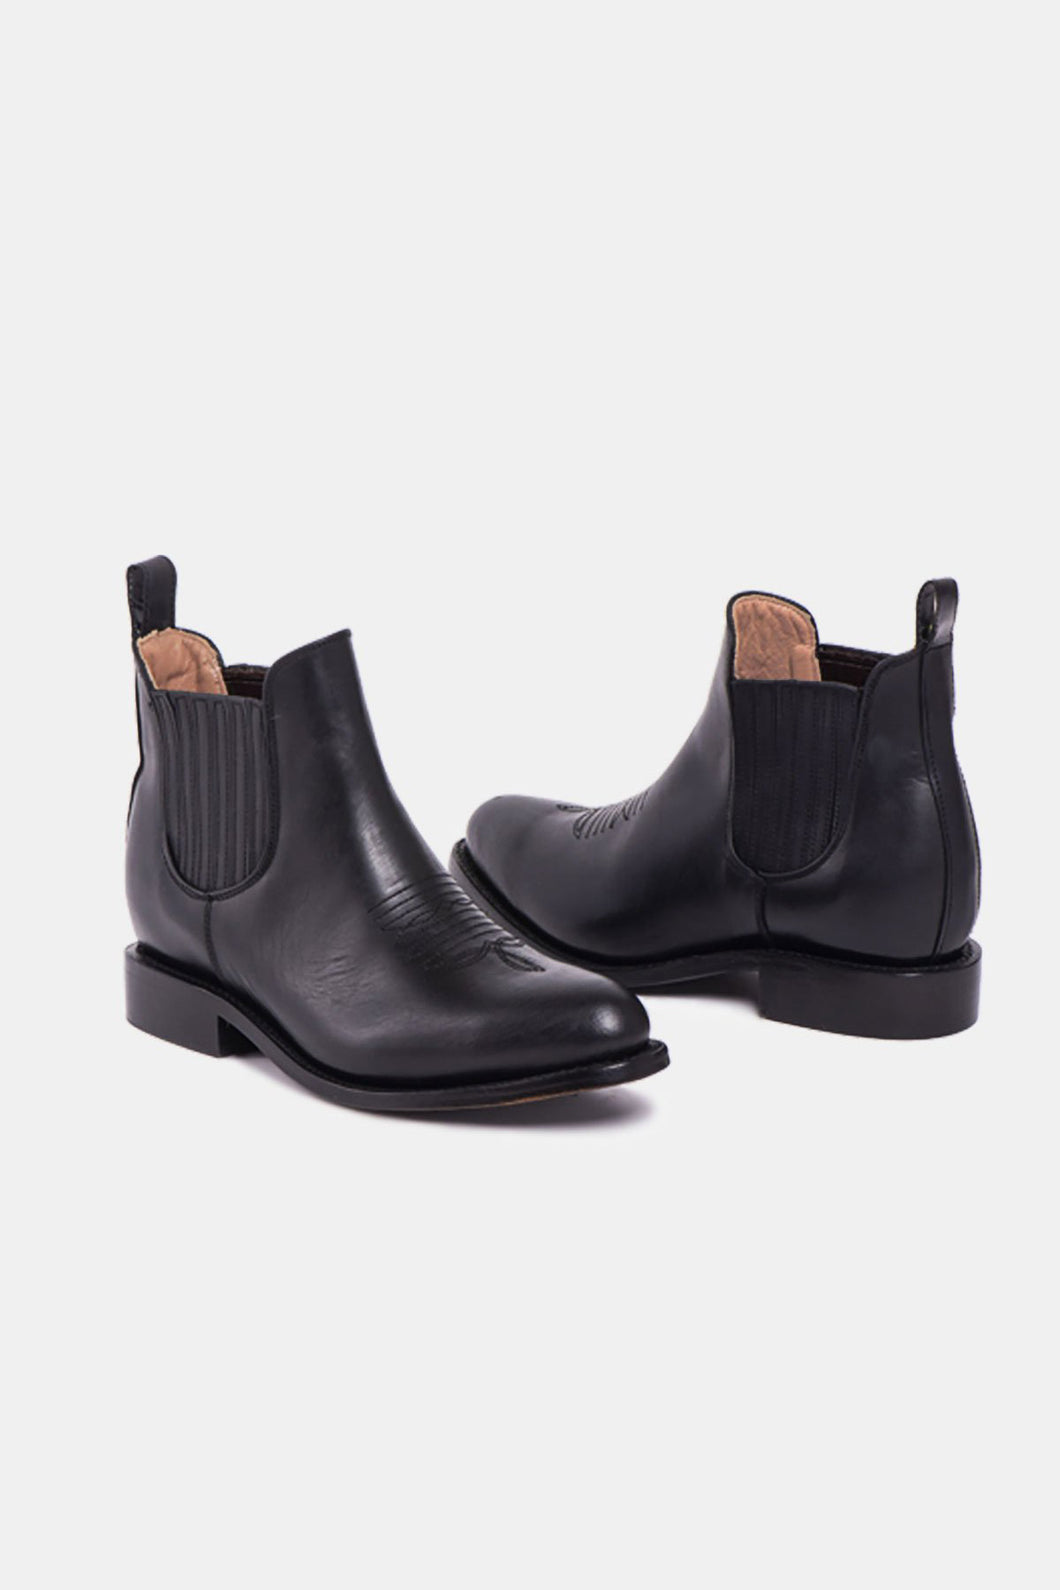 Eloisa Charro Boot Black